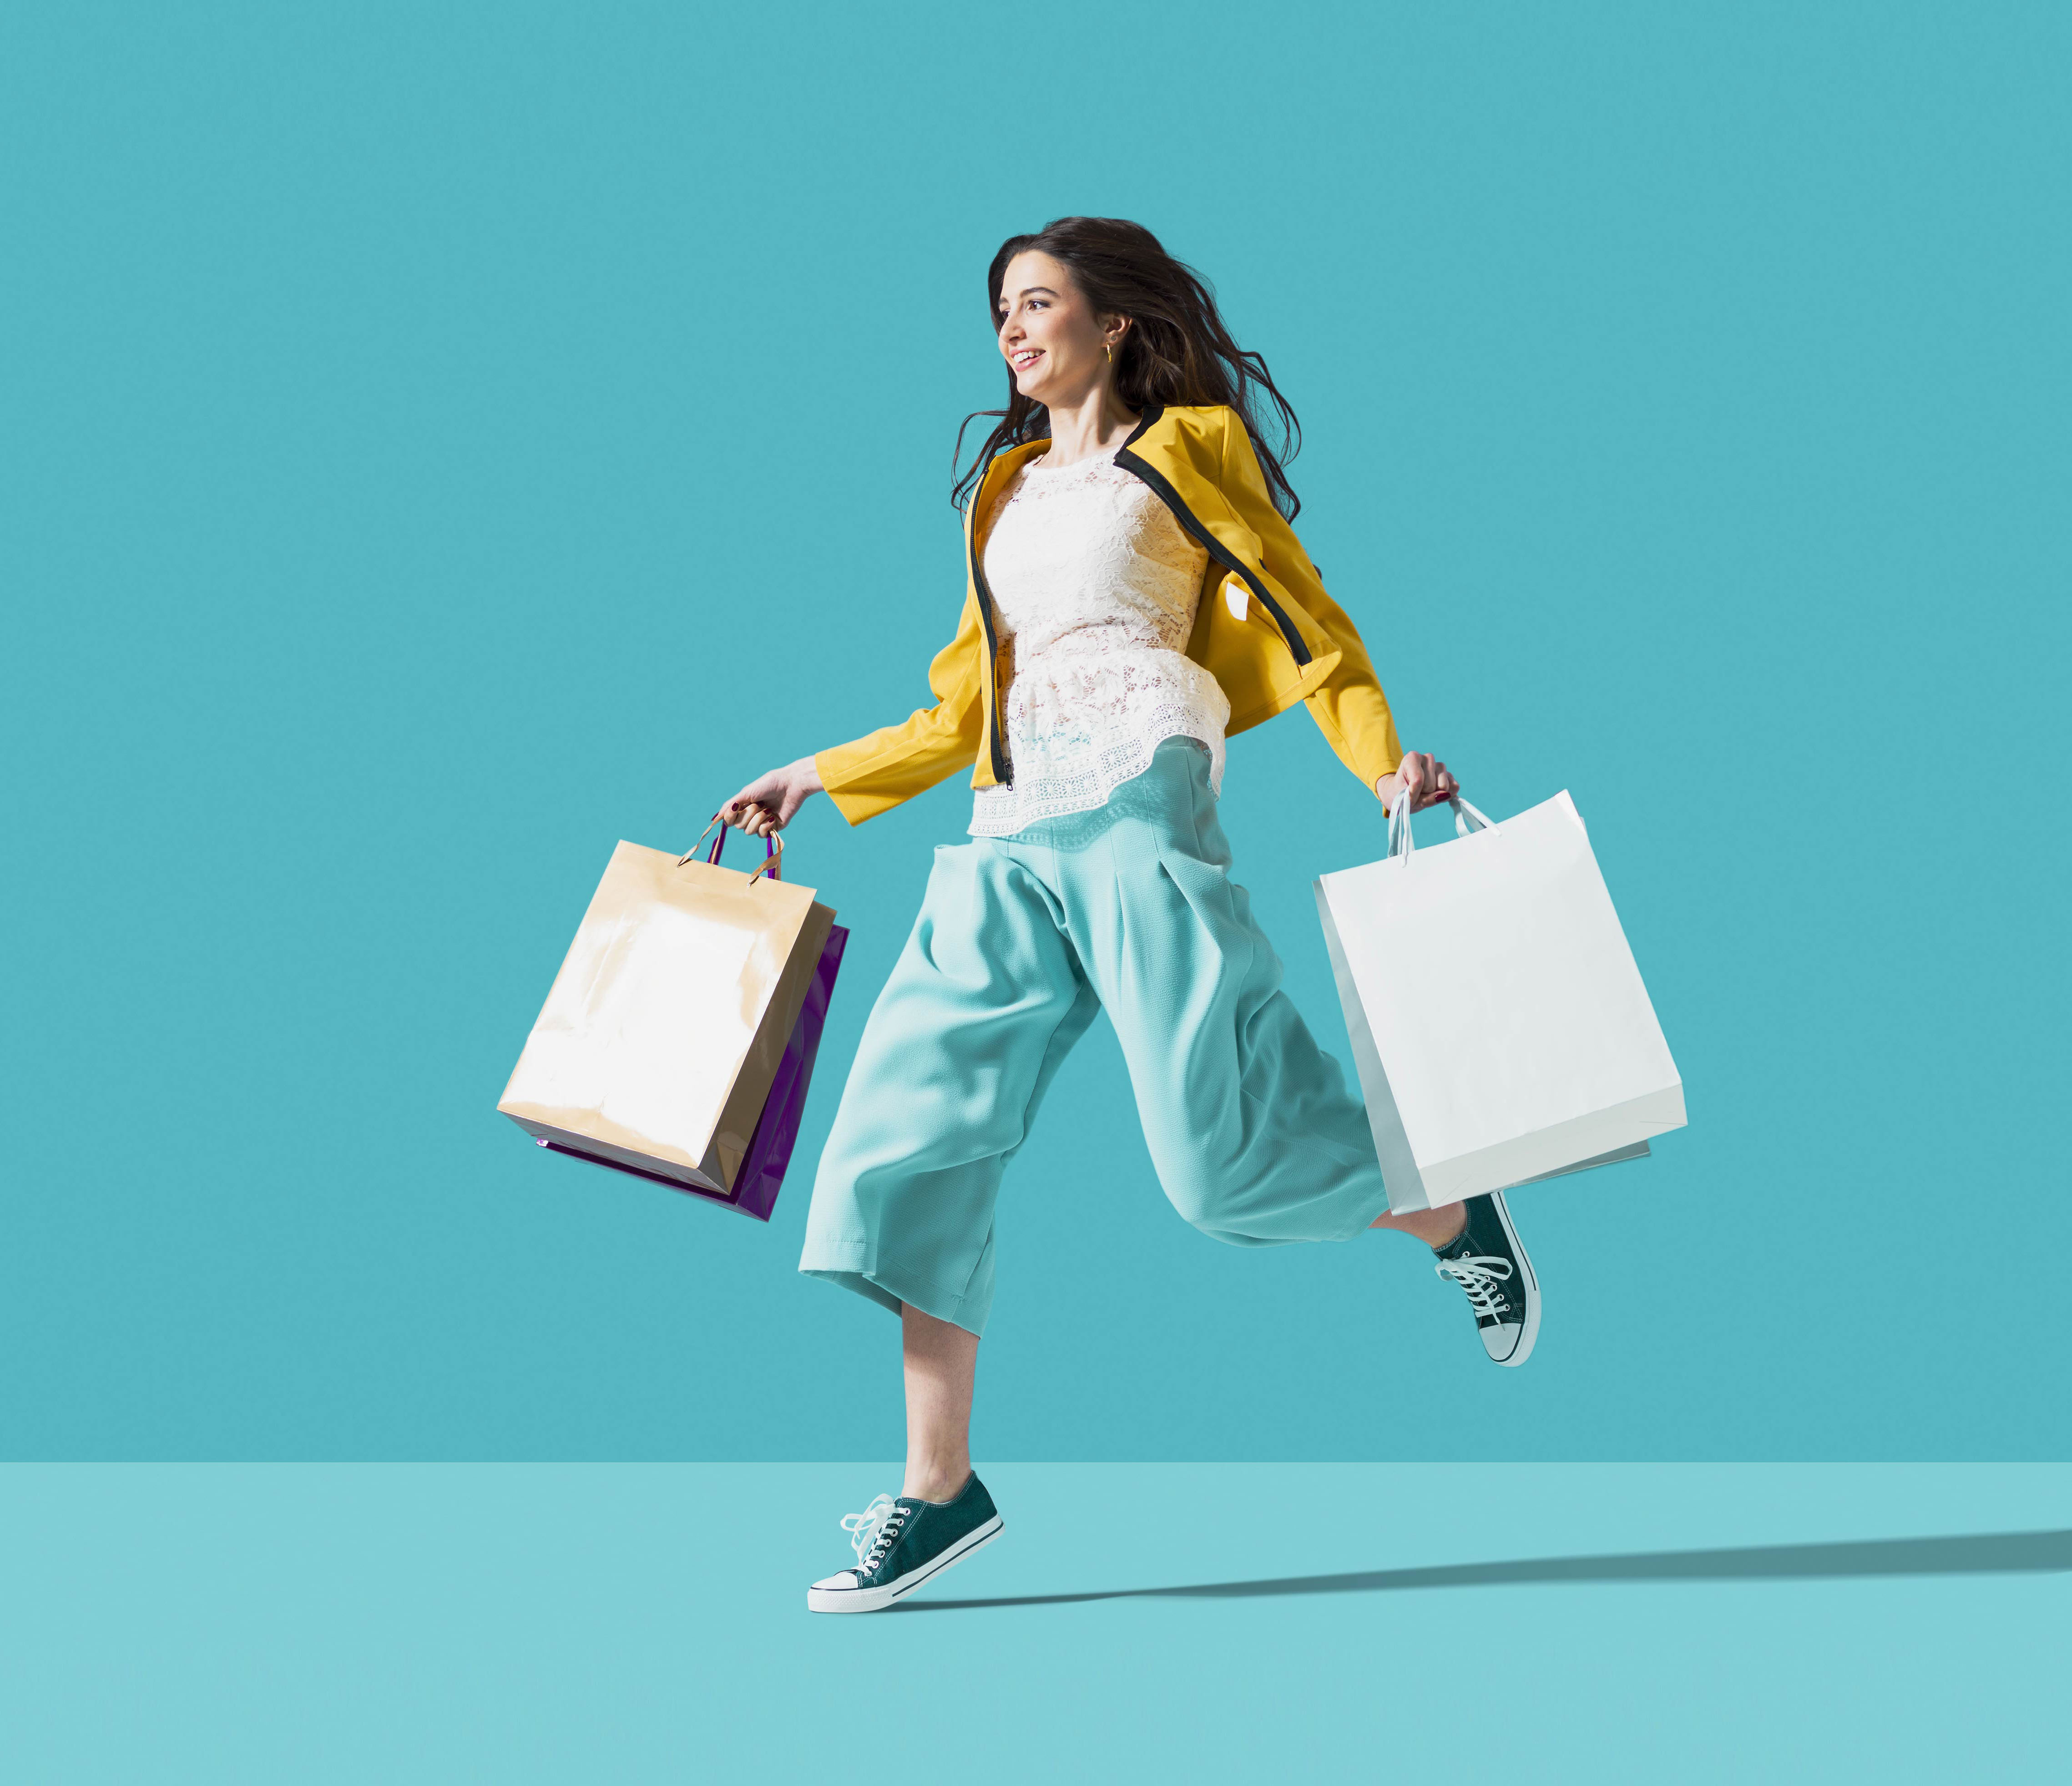 In the current E-Commerce landscape, personalization has come to be expected to some degree as more people are shifting their behaviors to shop through digital channels.